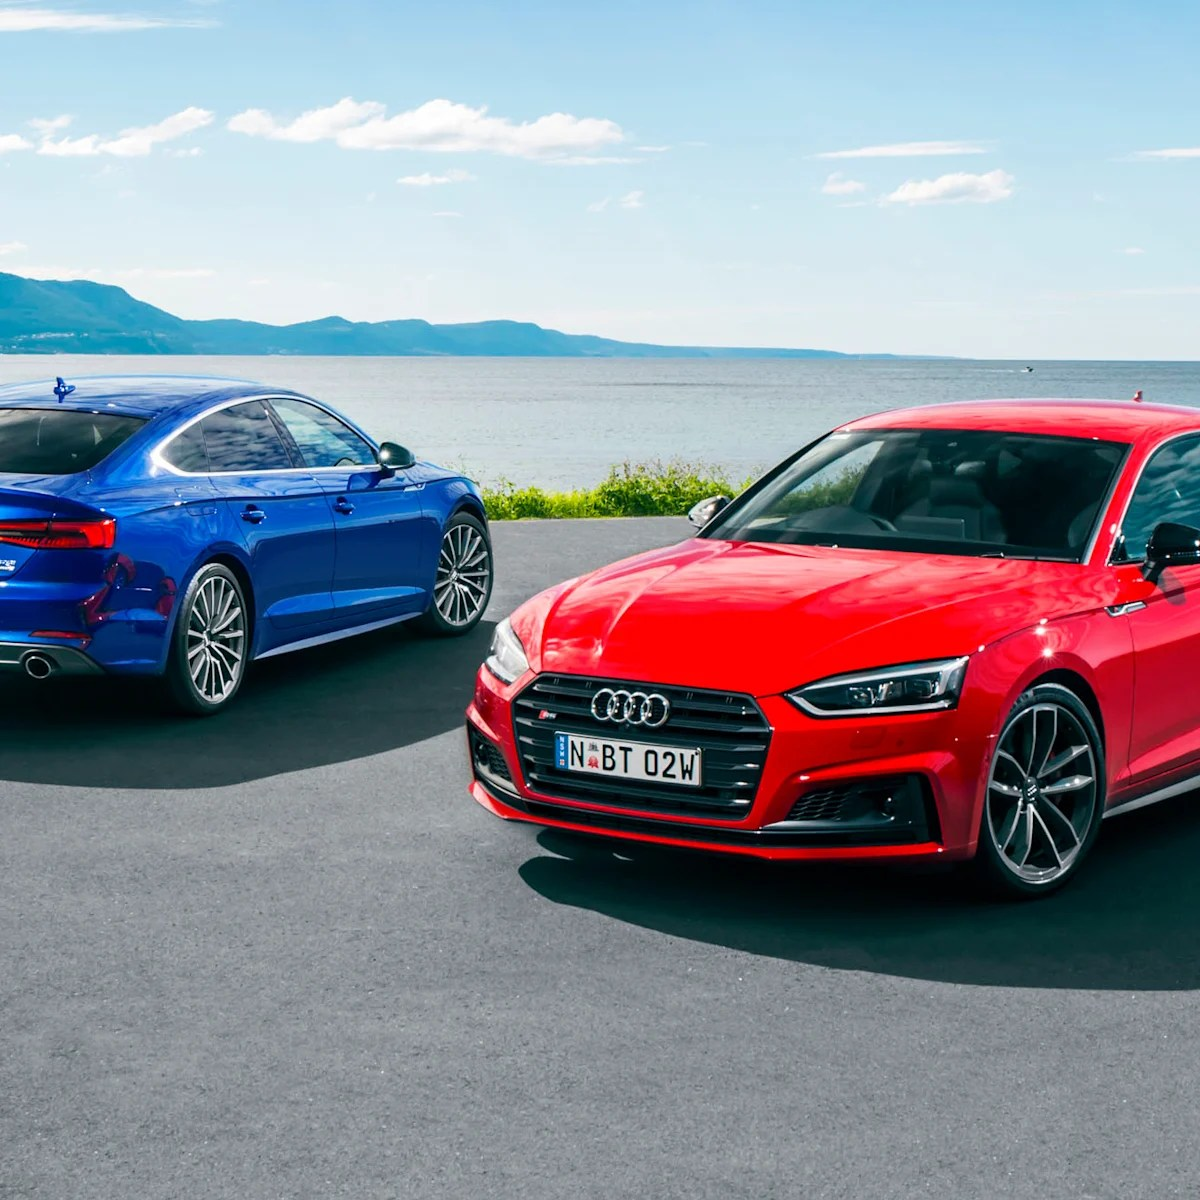 hight resolution of 2017 audi a5 sportback s5 sportback pricing and specs new range brings faster hero model caradvice